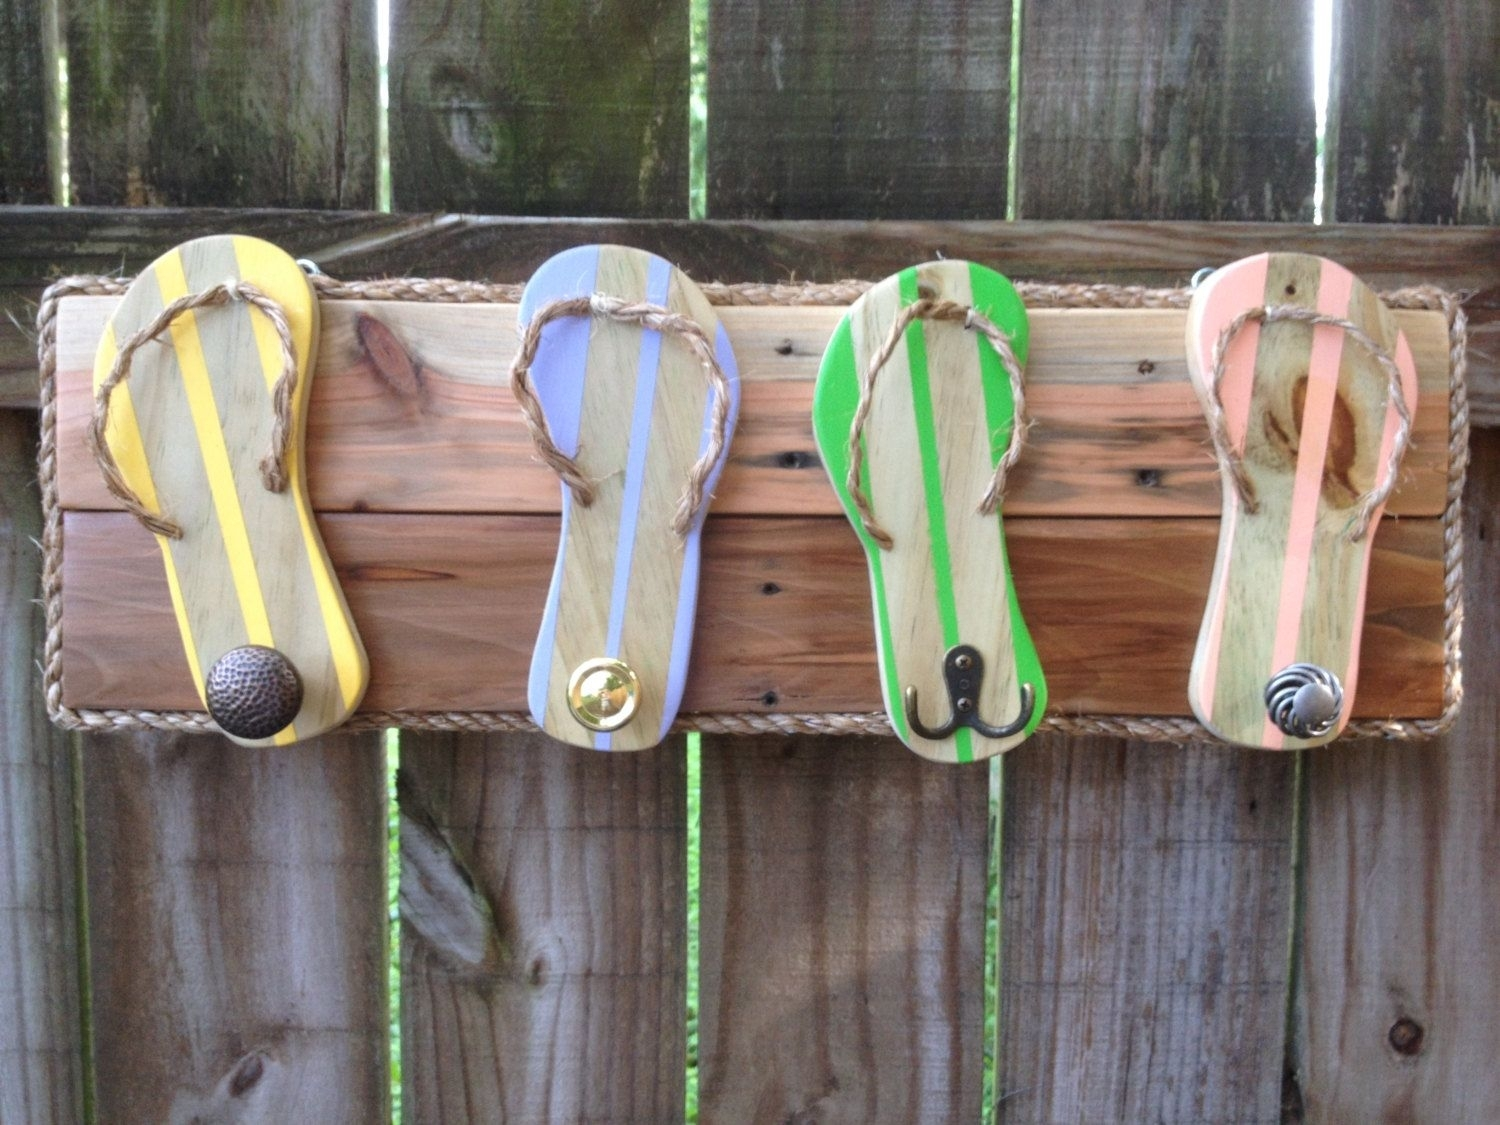 Flip Flop Towel Holder – Outdoor Shower Hooks – Bathroom Towel Rack Regarding Most Current Flip Flop Wall Art (View 6 of 15)